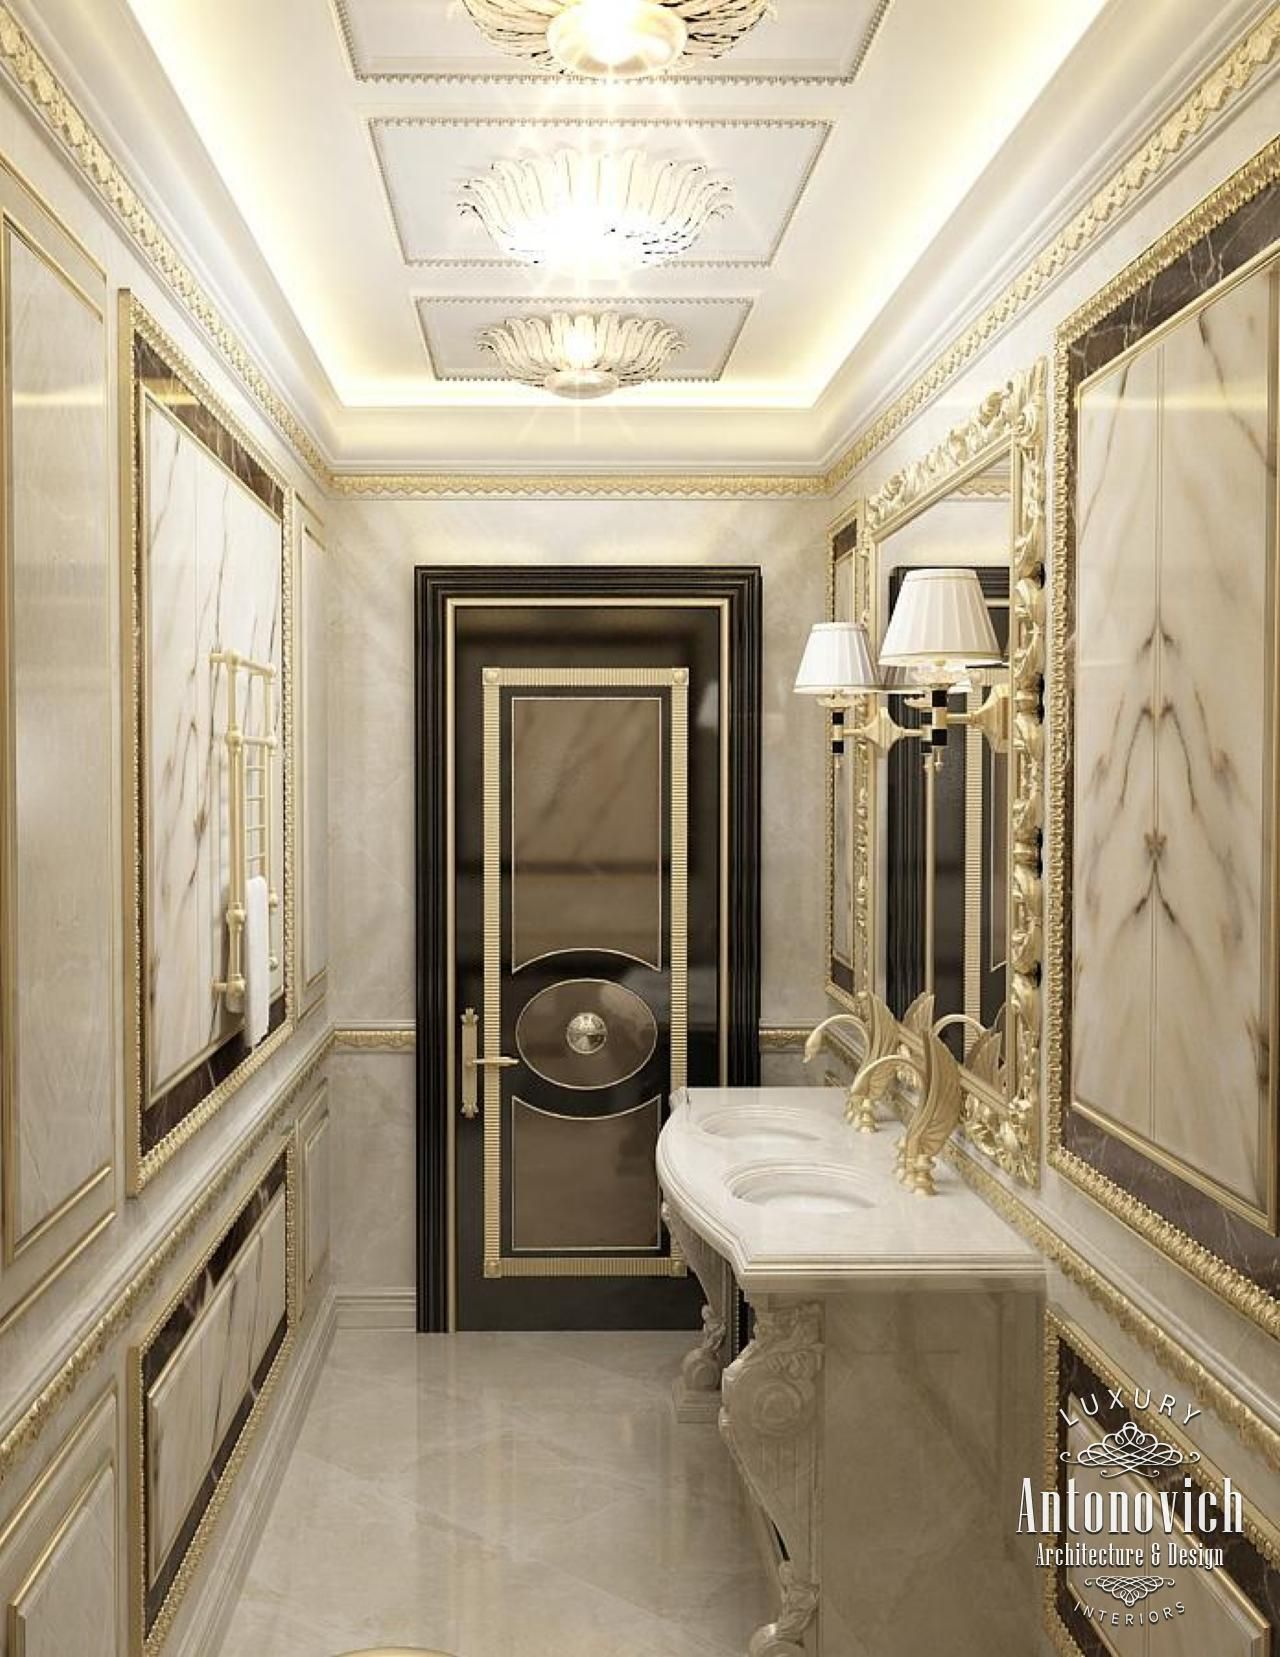 Villa interior design in dubai villa in qatar photo 13 for Bathroom interior design dubai